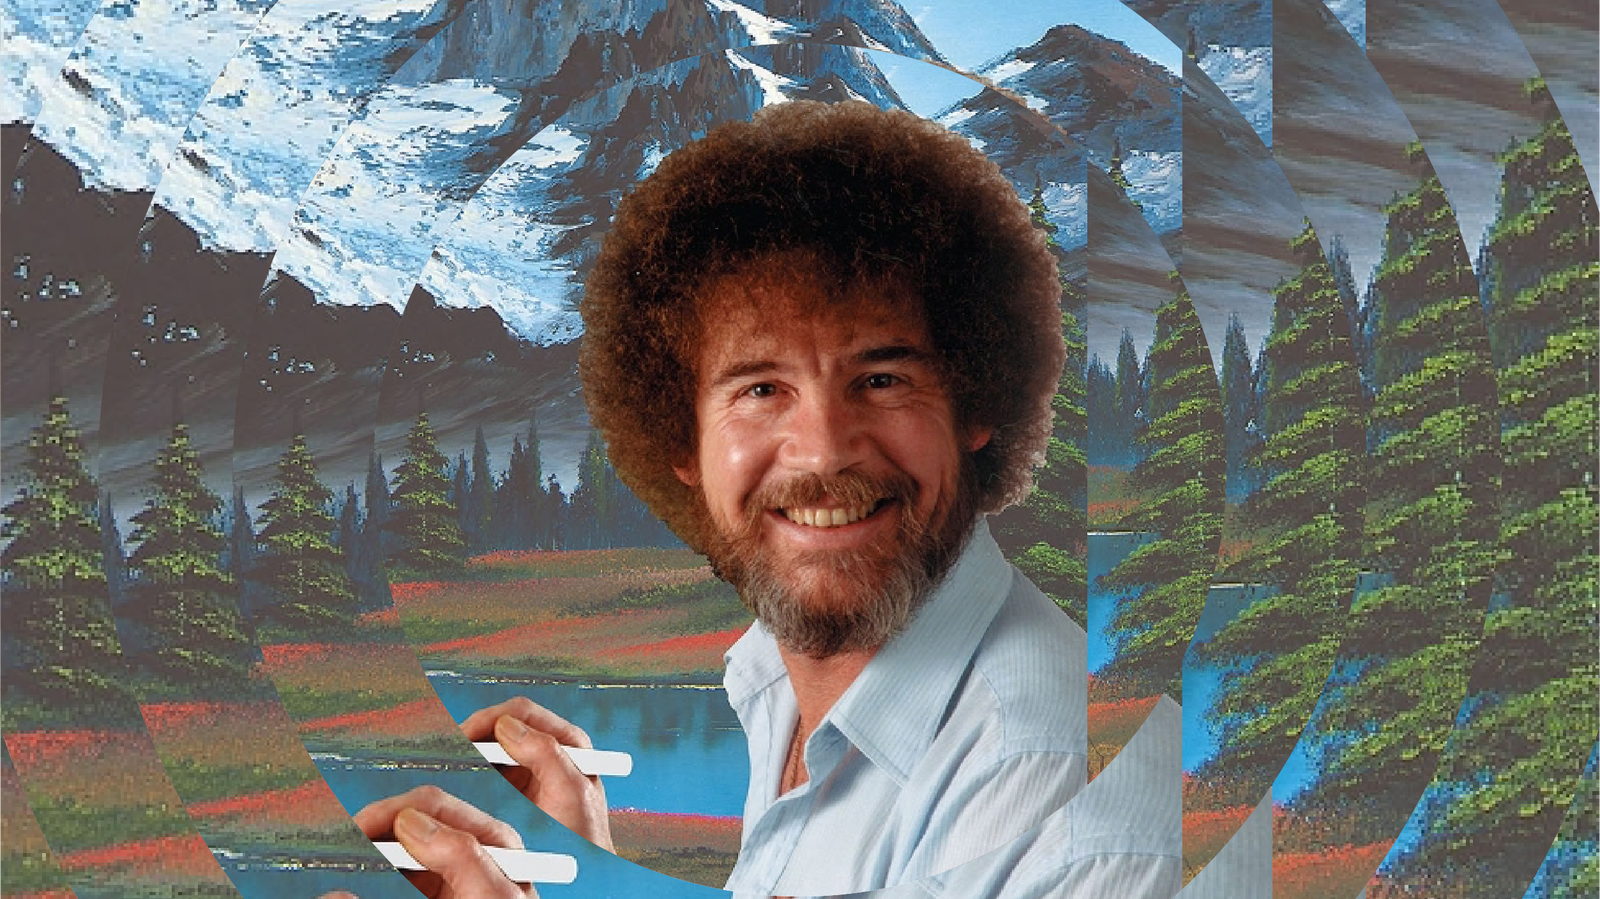 What Happened to the 1200 Paintings Painted by Bob Ross? The Mystery Has Finally Been Solved